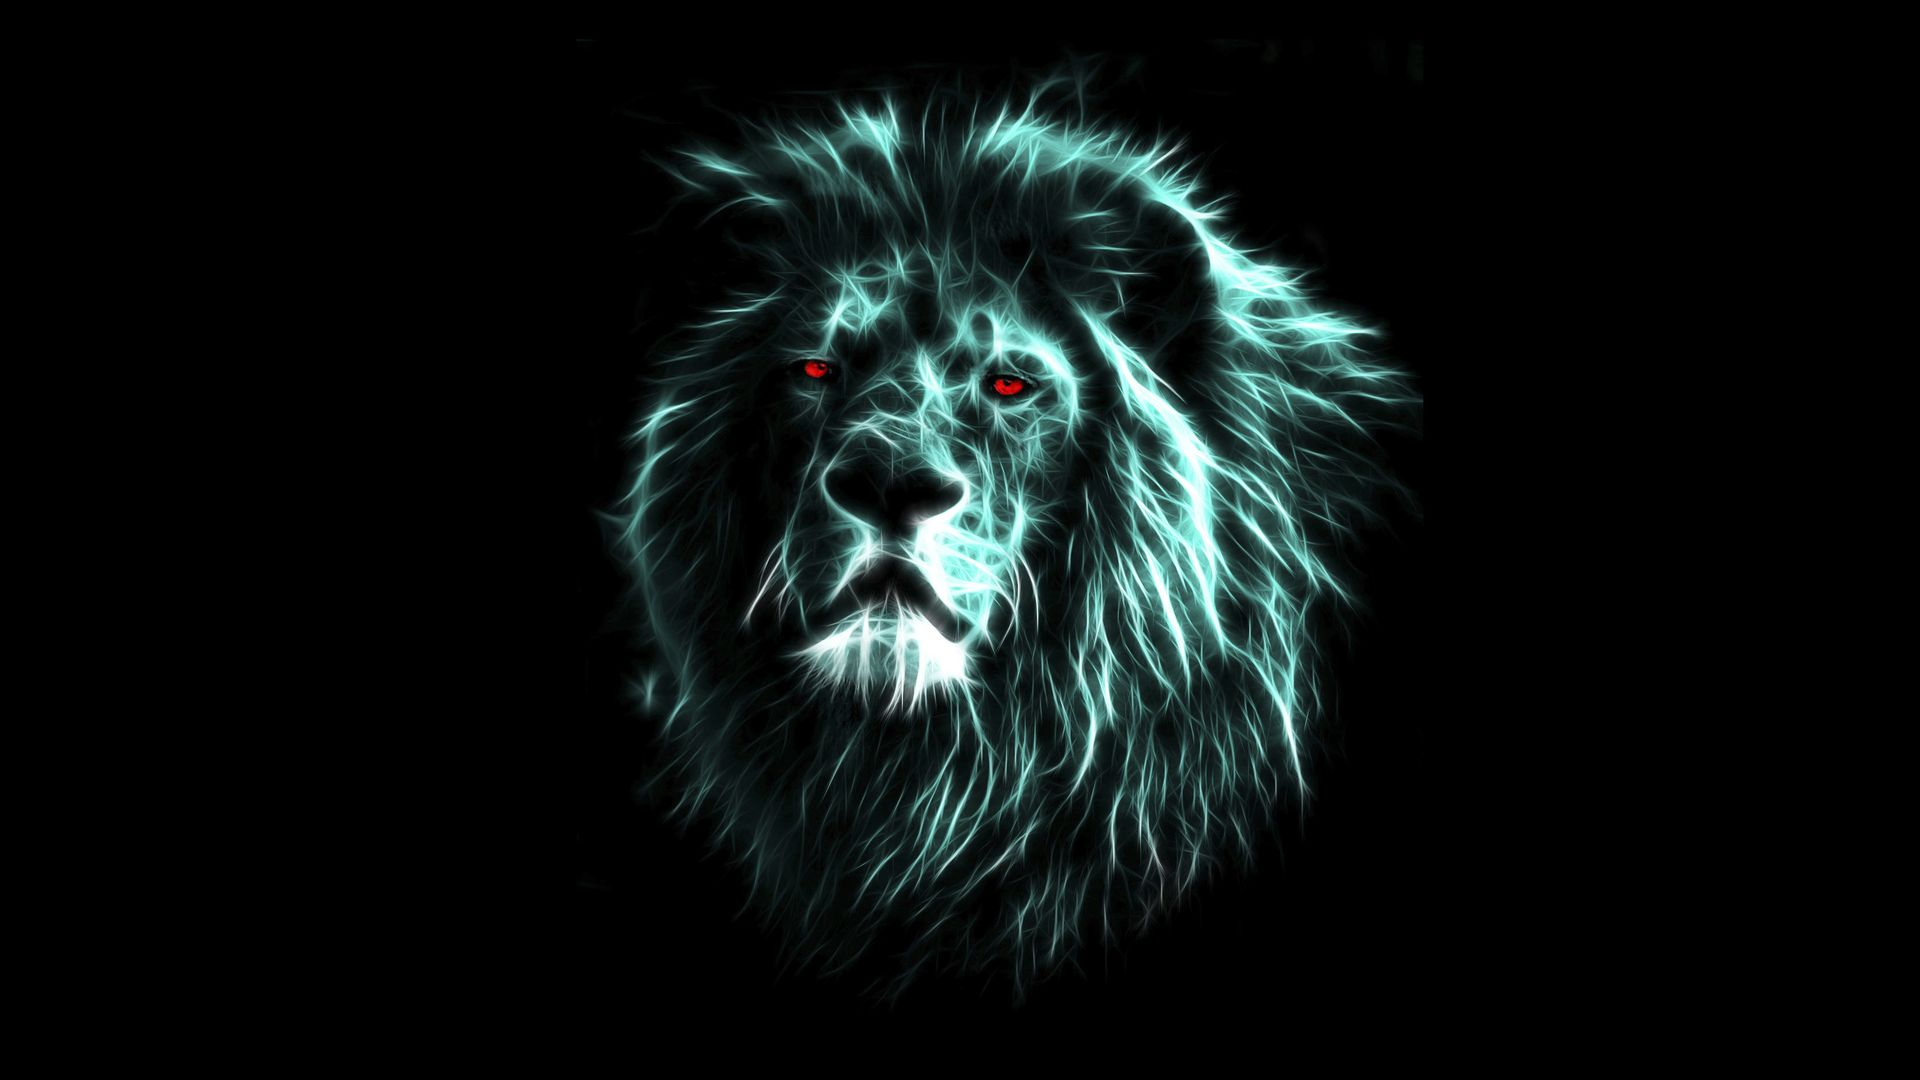 lion background hd